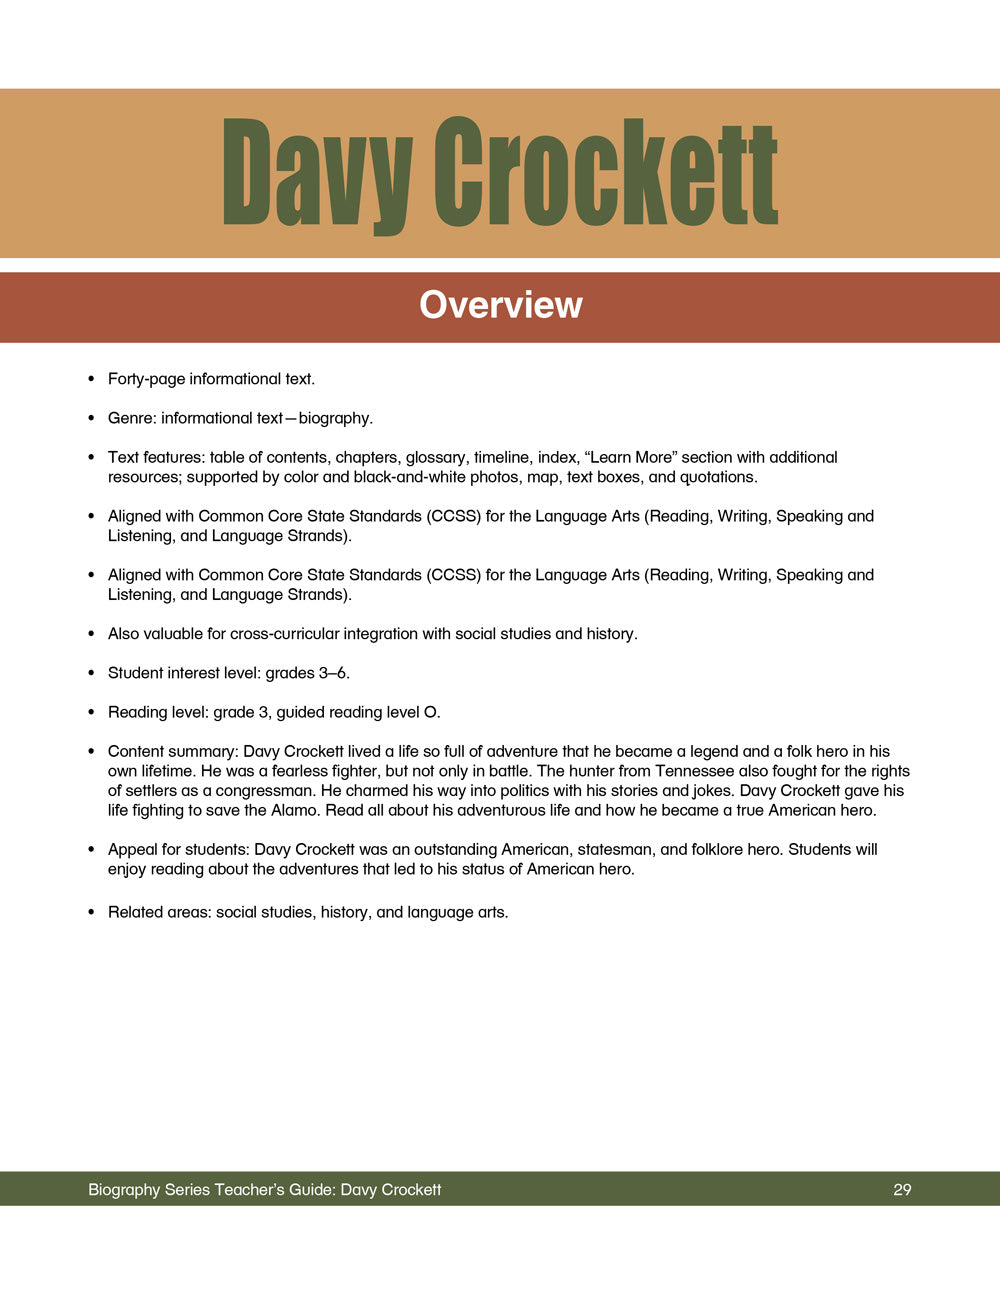 Davy Crockett Teacher's Guide